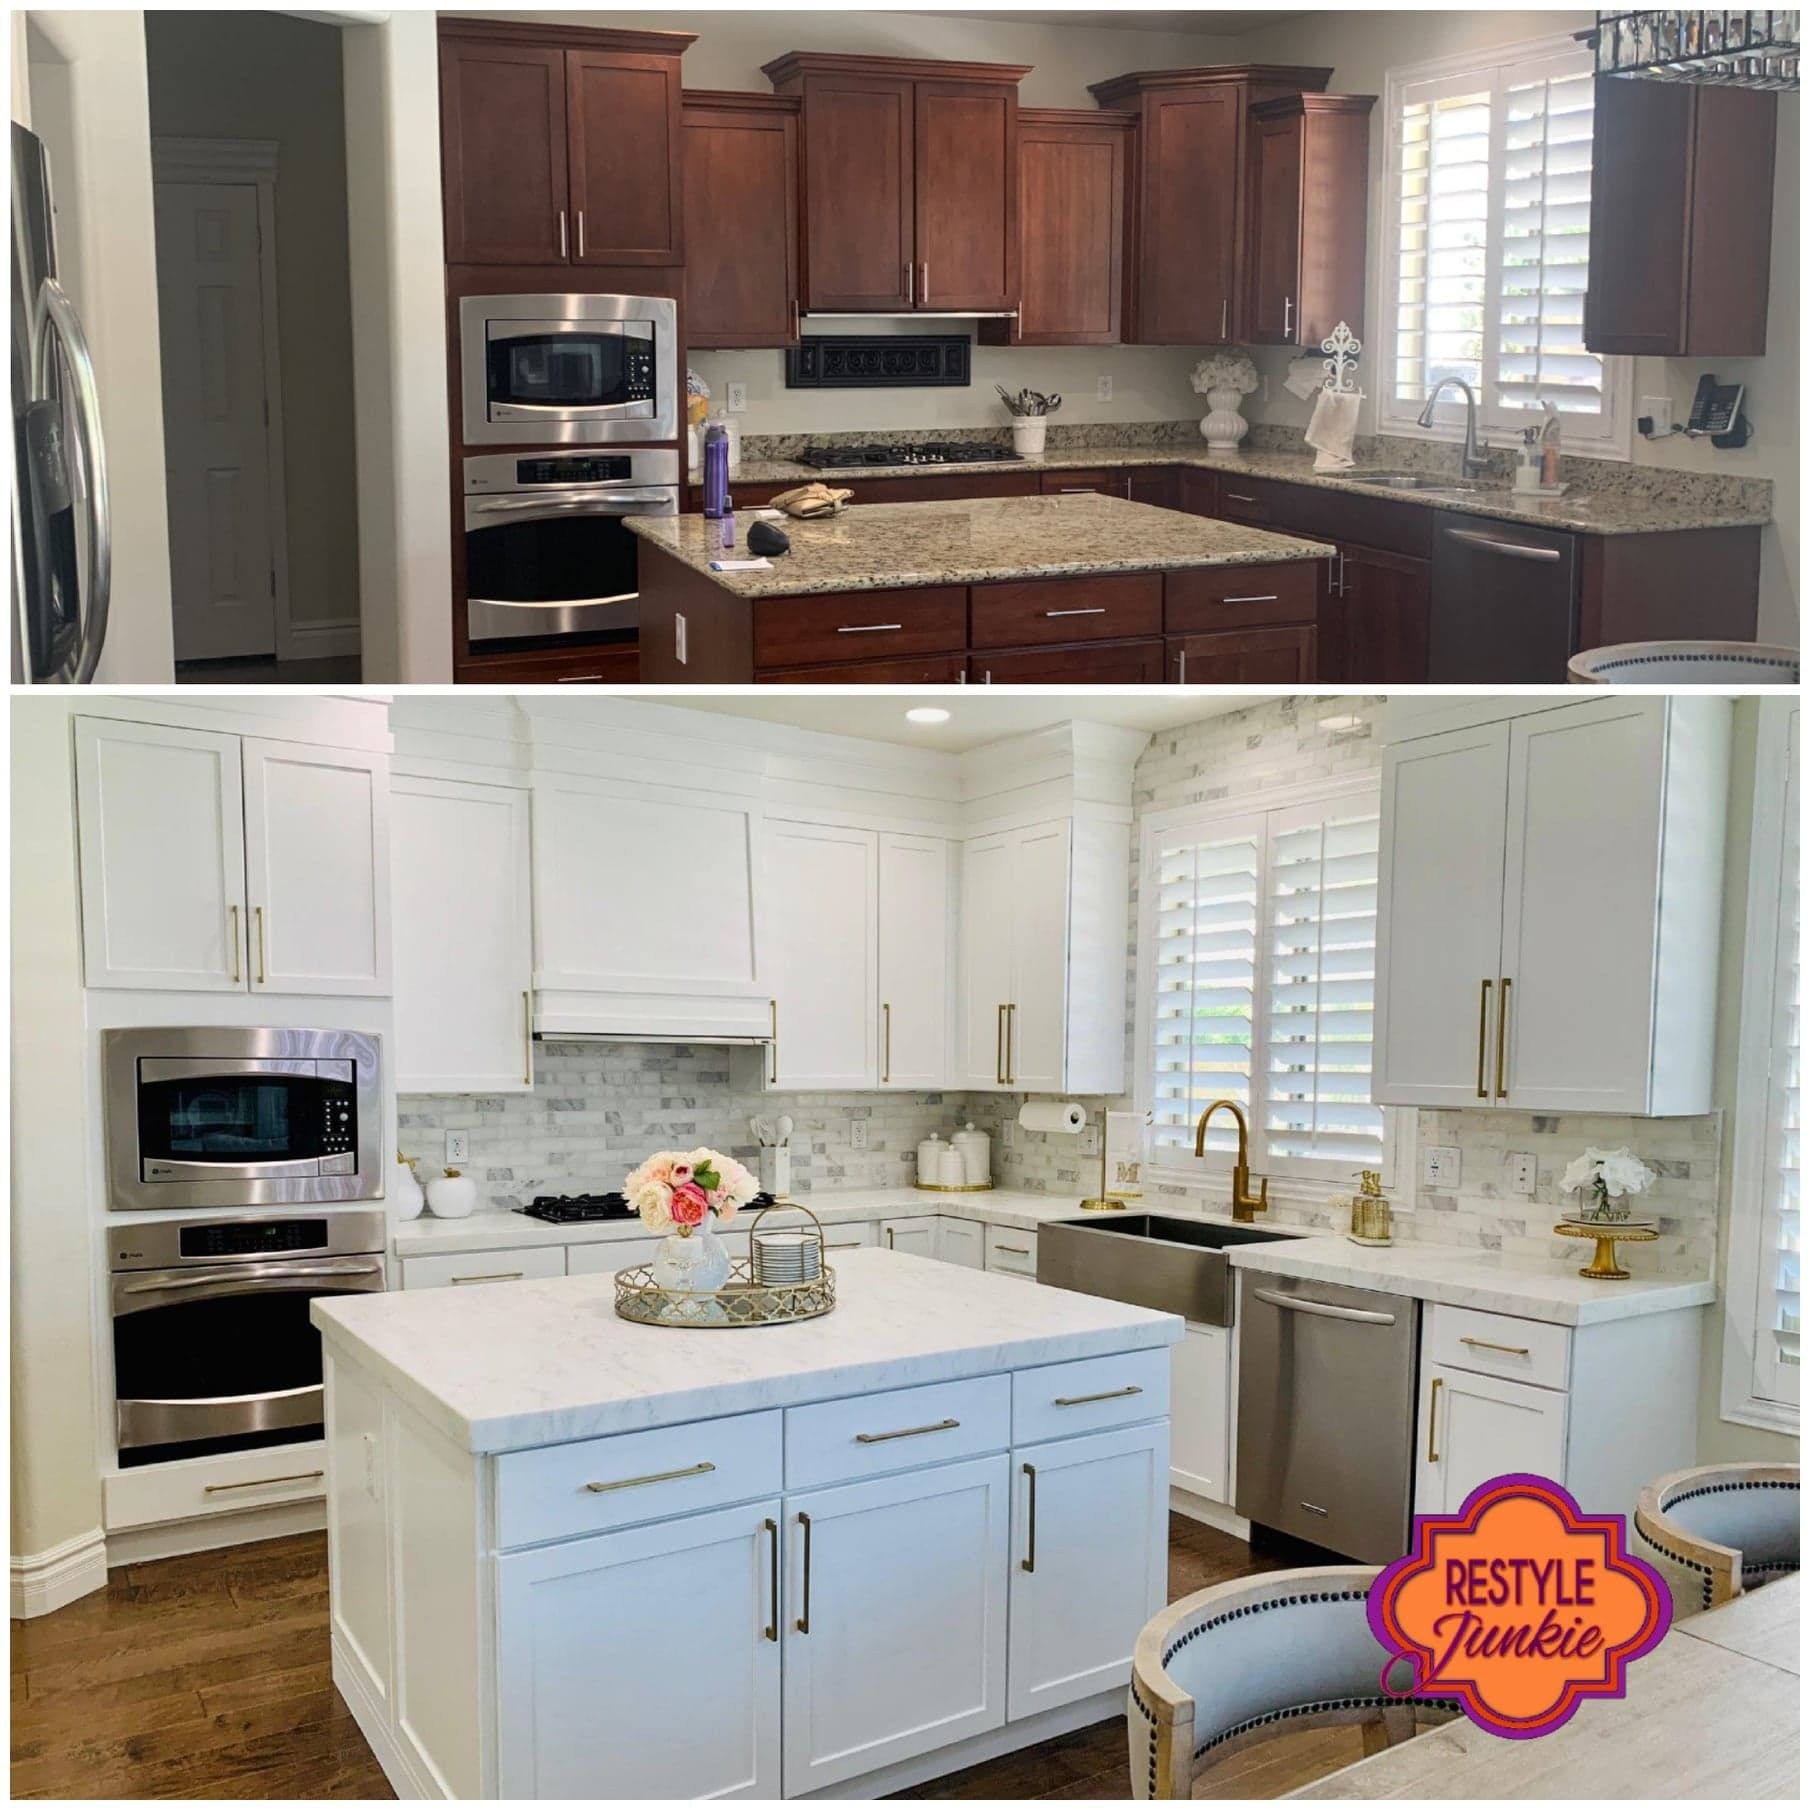 Professional Cabinet Painting And Refinishing Services Restyle Junkie In 2020 Kitchen Cabinet Styles Modern White Kitchen Cabinets Kitchen Interior Design Modern